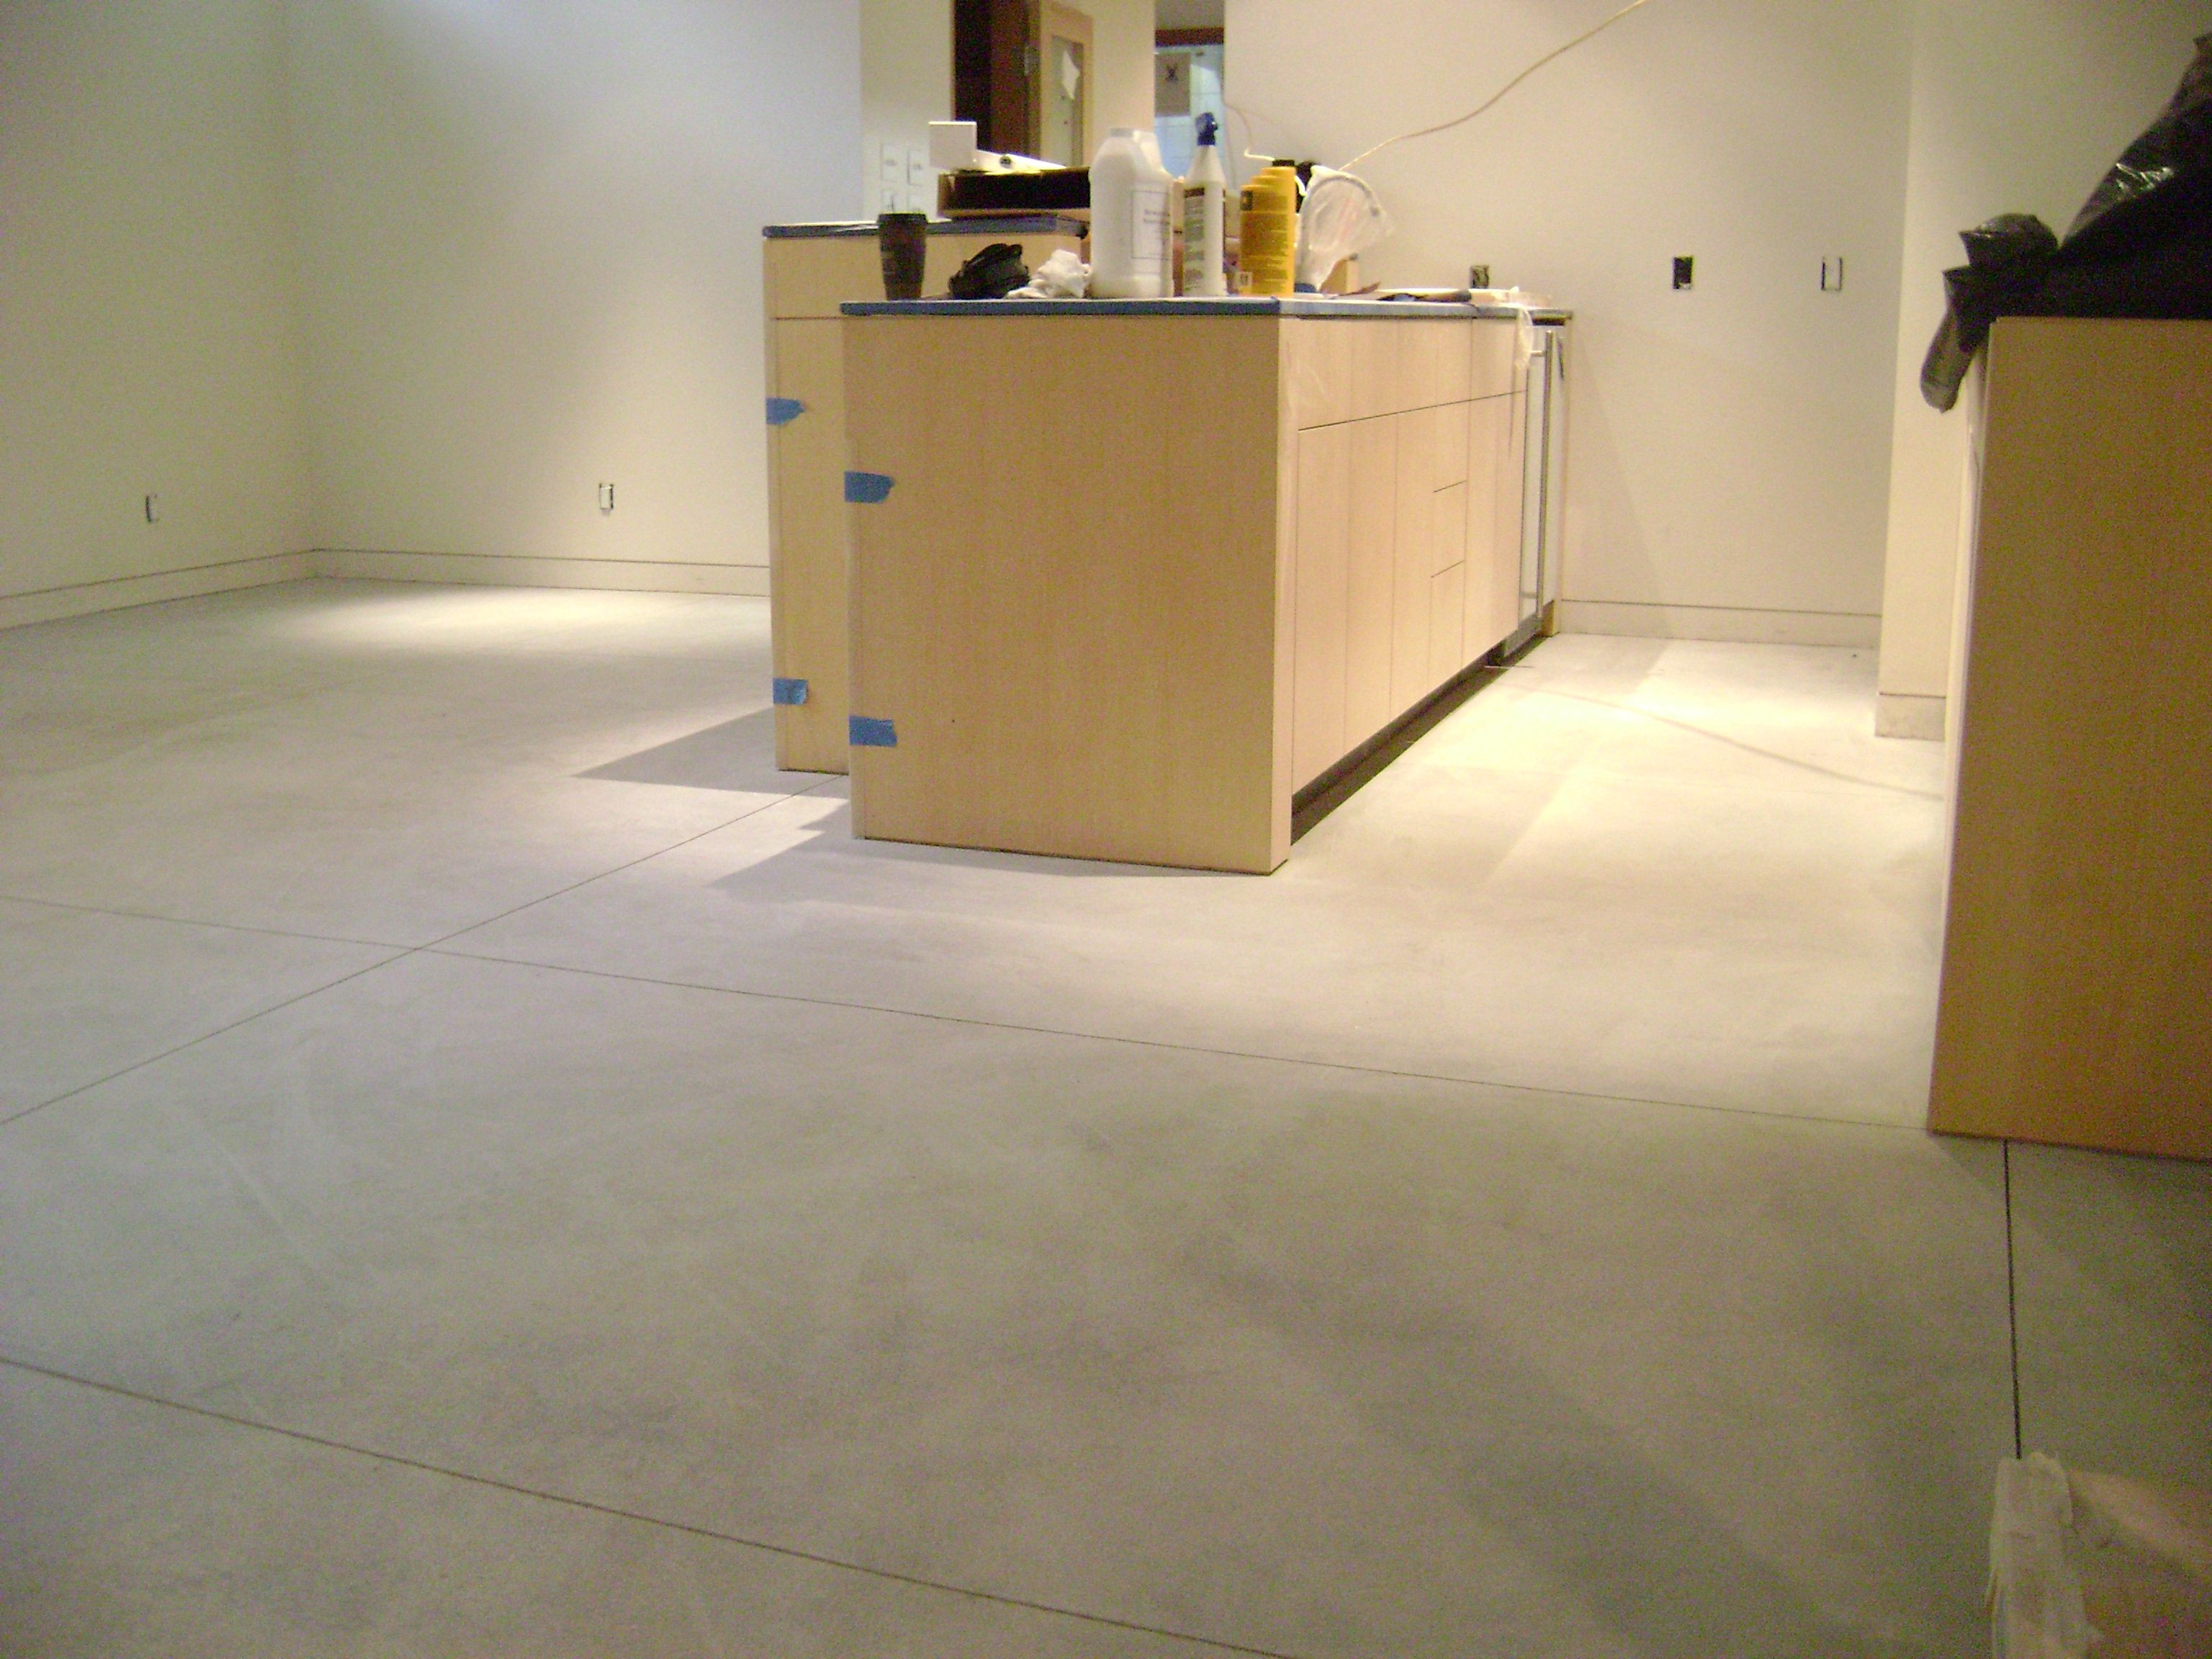 install hardwood floor on concrete basement of new home construction 150 grit polished concrete flooring pertaining to new home construction 150 grit polished concrete flooring installation in basement by www concreteperfection net